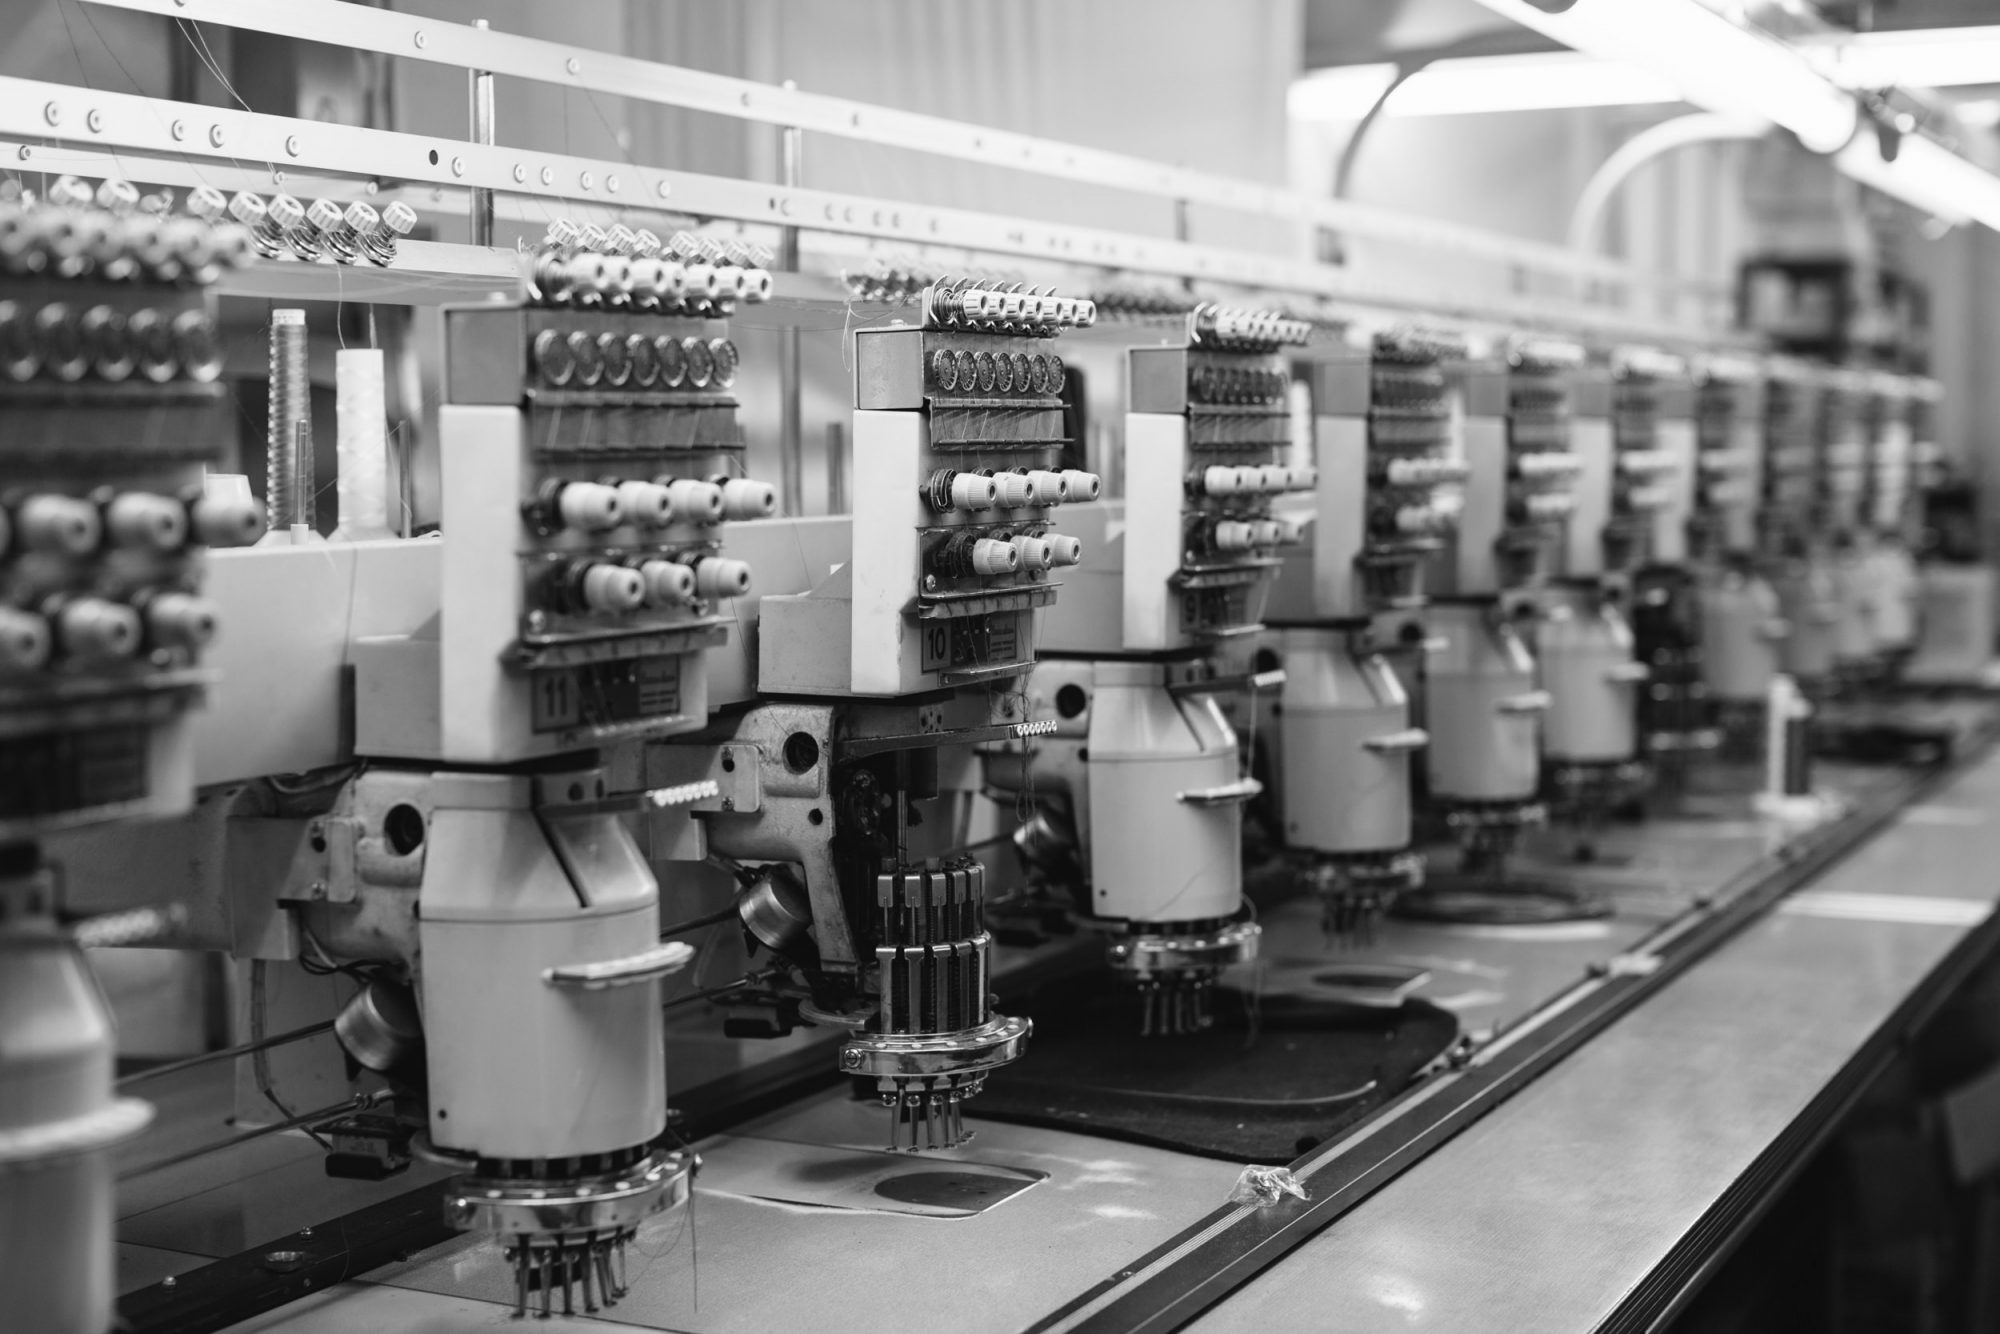 Embroidery machines in British clothing factory